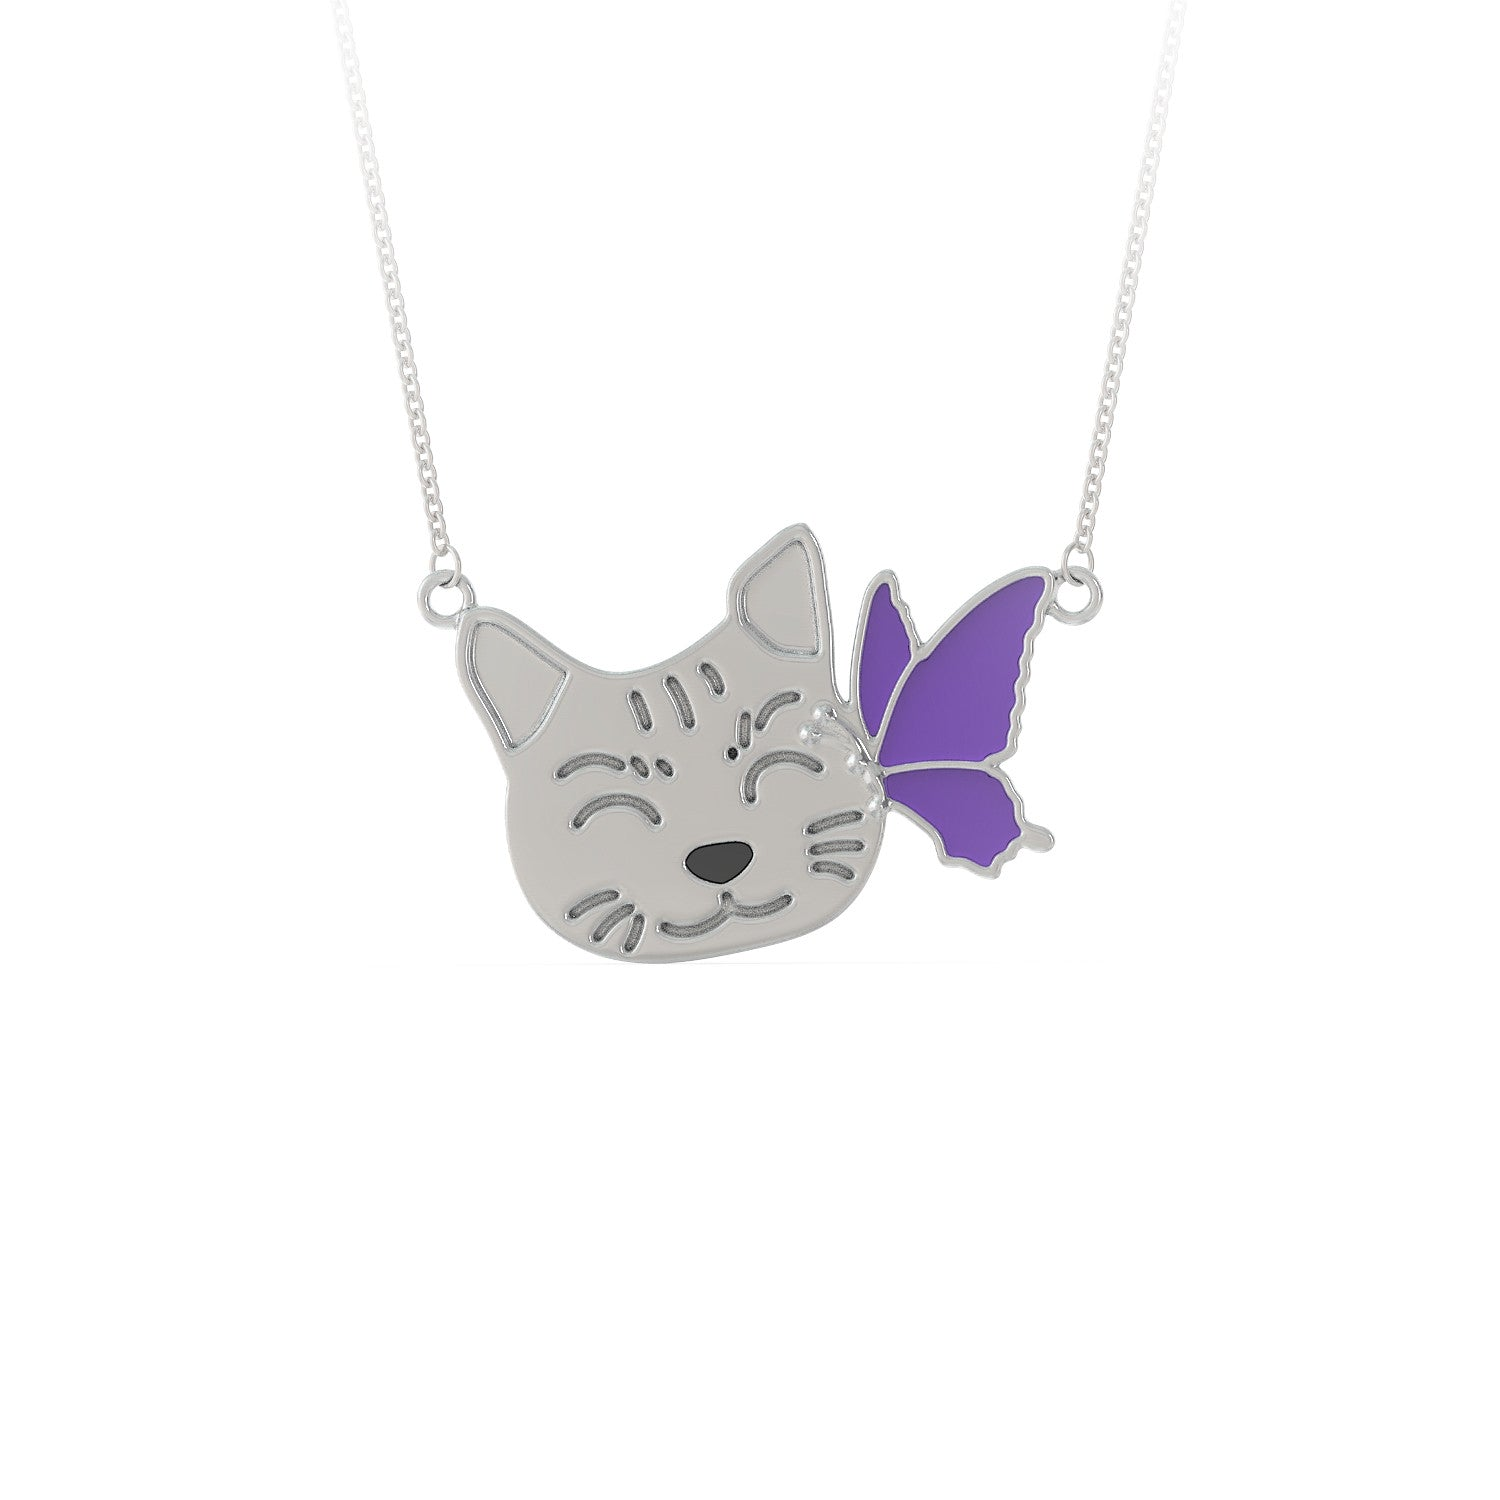 Butterfly Kitty Necklace